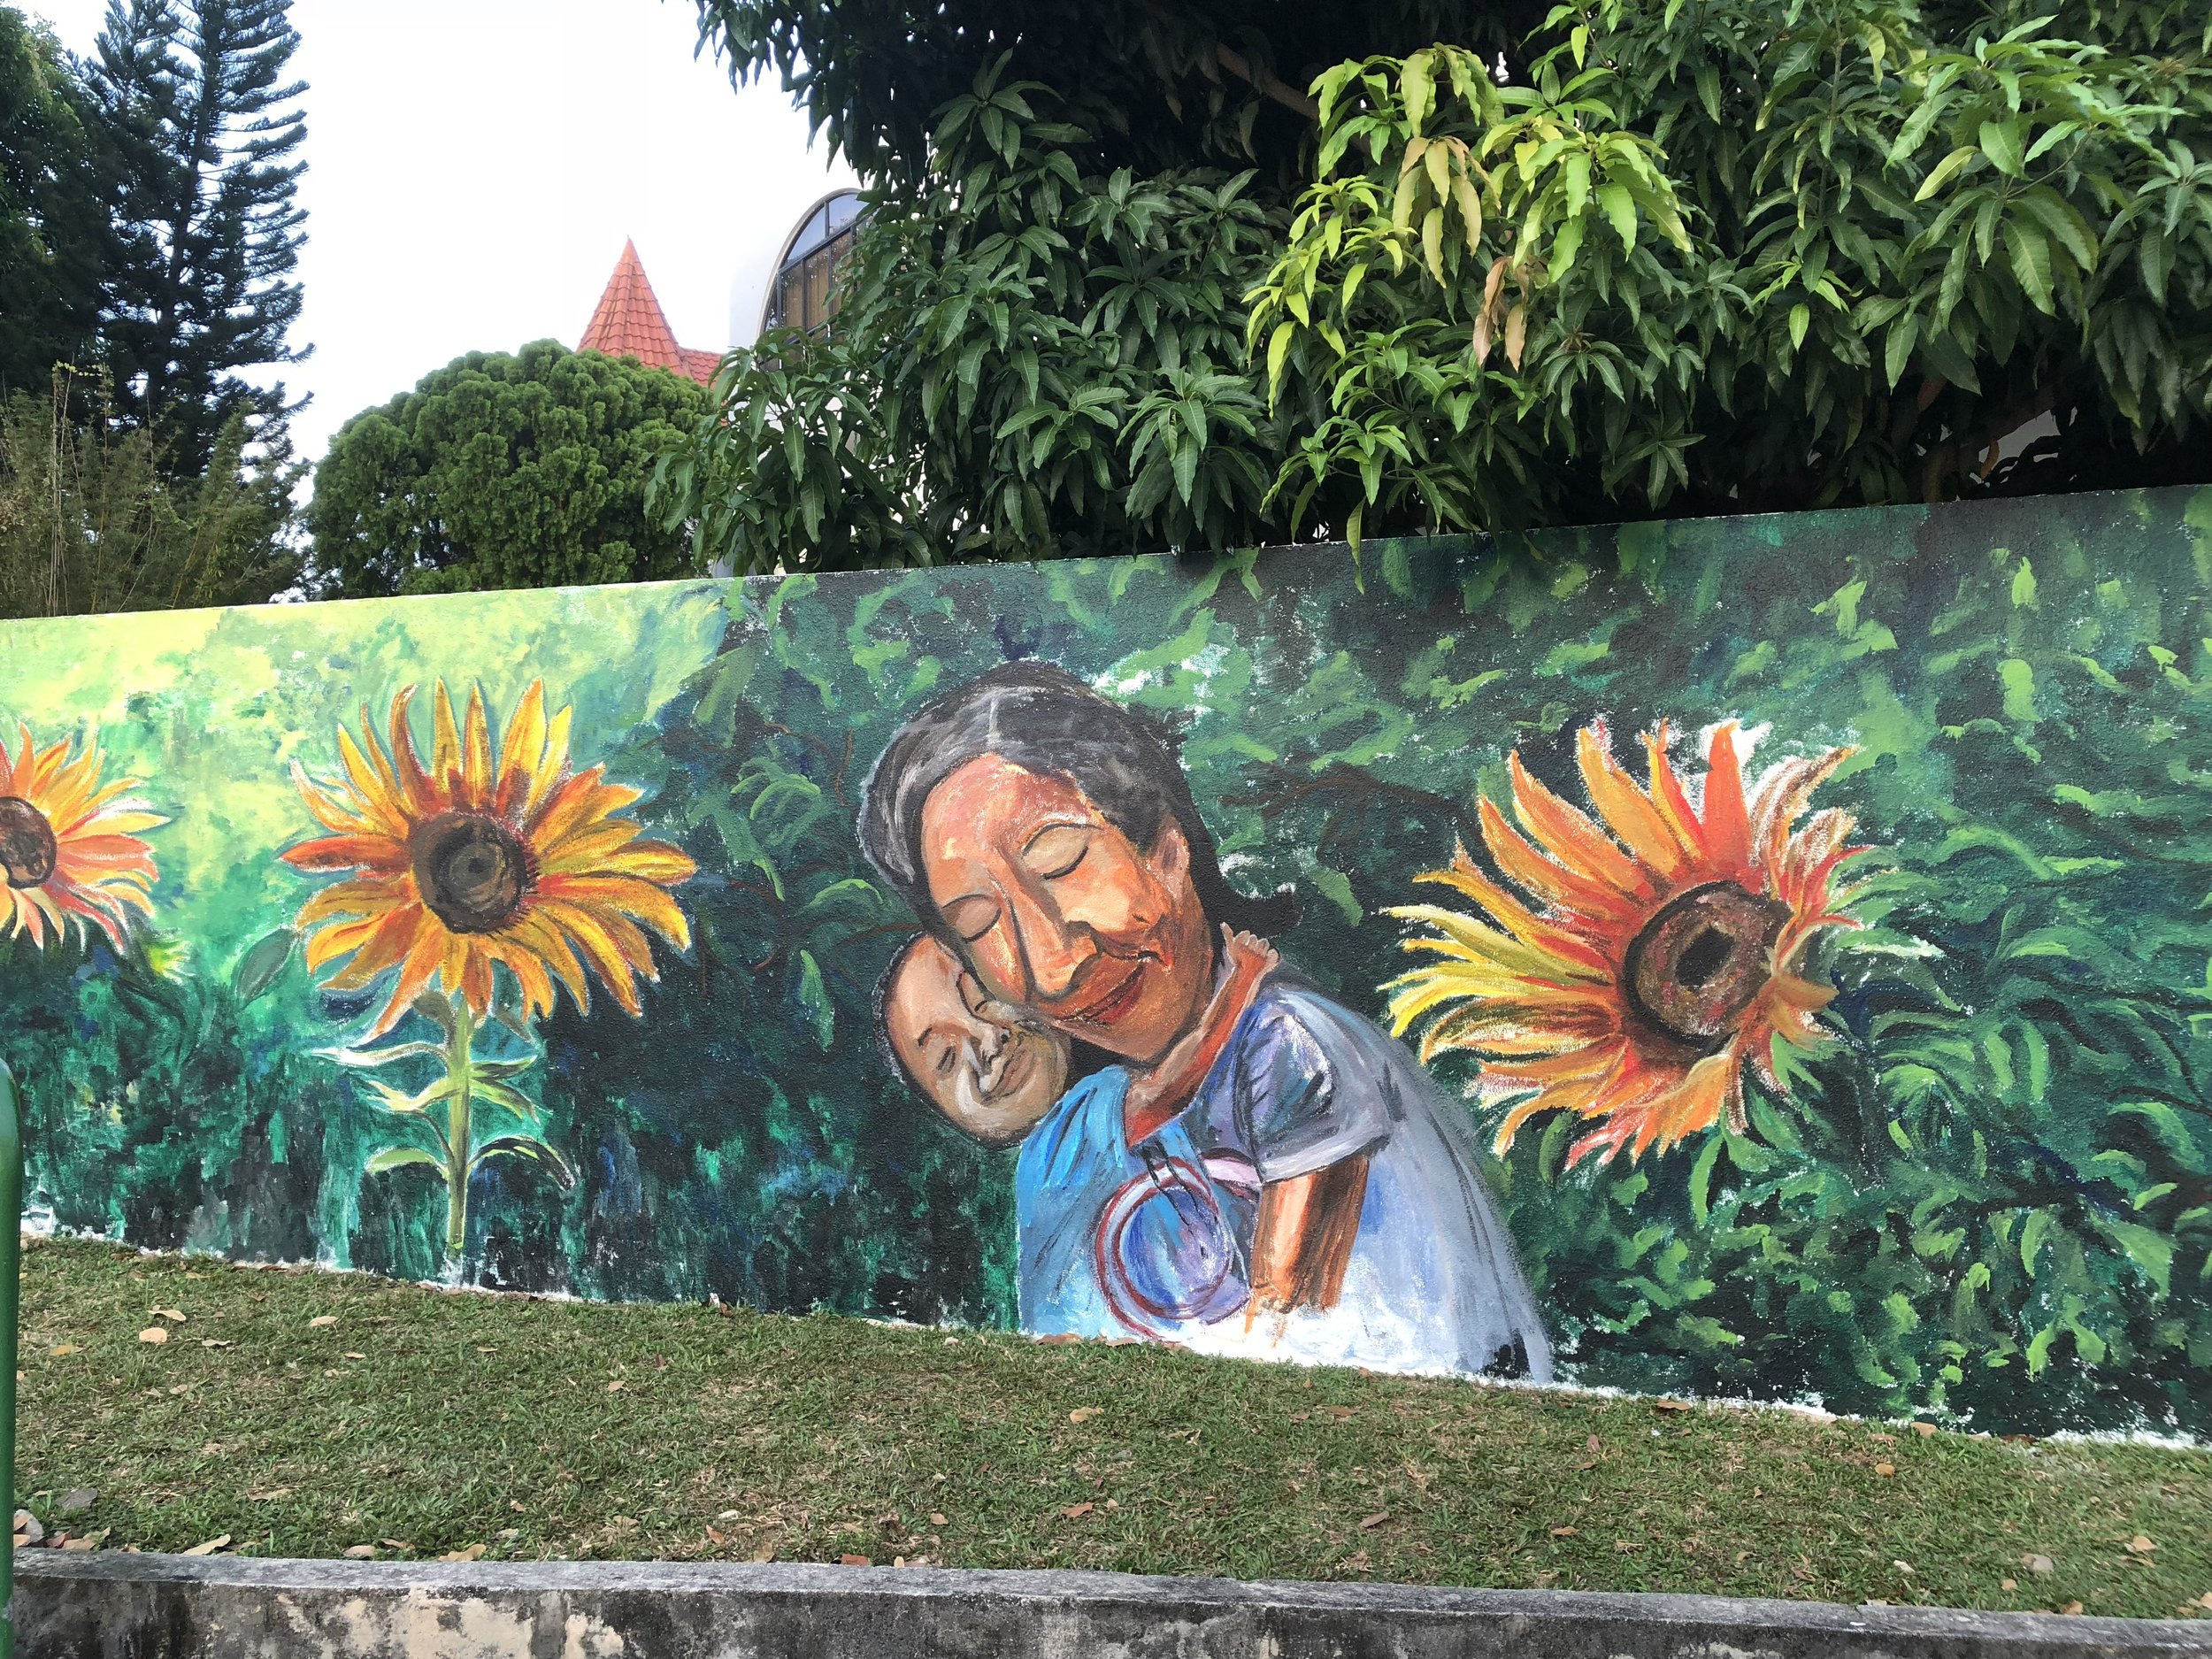 Hints of Van Gogh on second wall as well. Sunflowers signify Hope and they face the parent and the child here. I only added the sound of 3 in Cantonese means Life. To give this child a chance in Life.